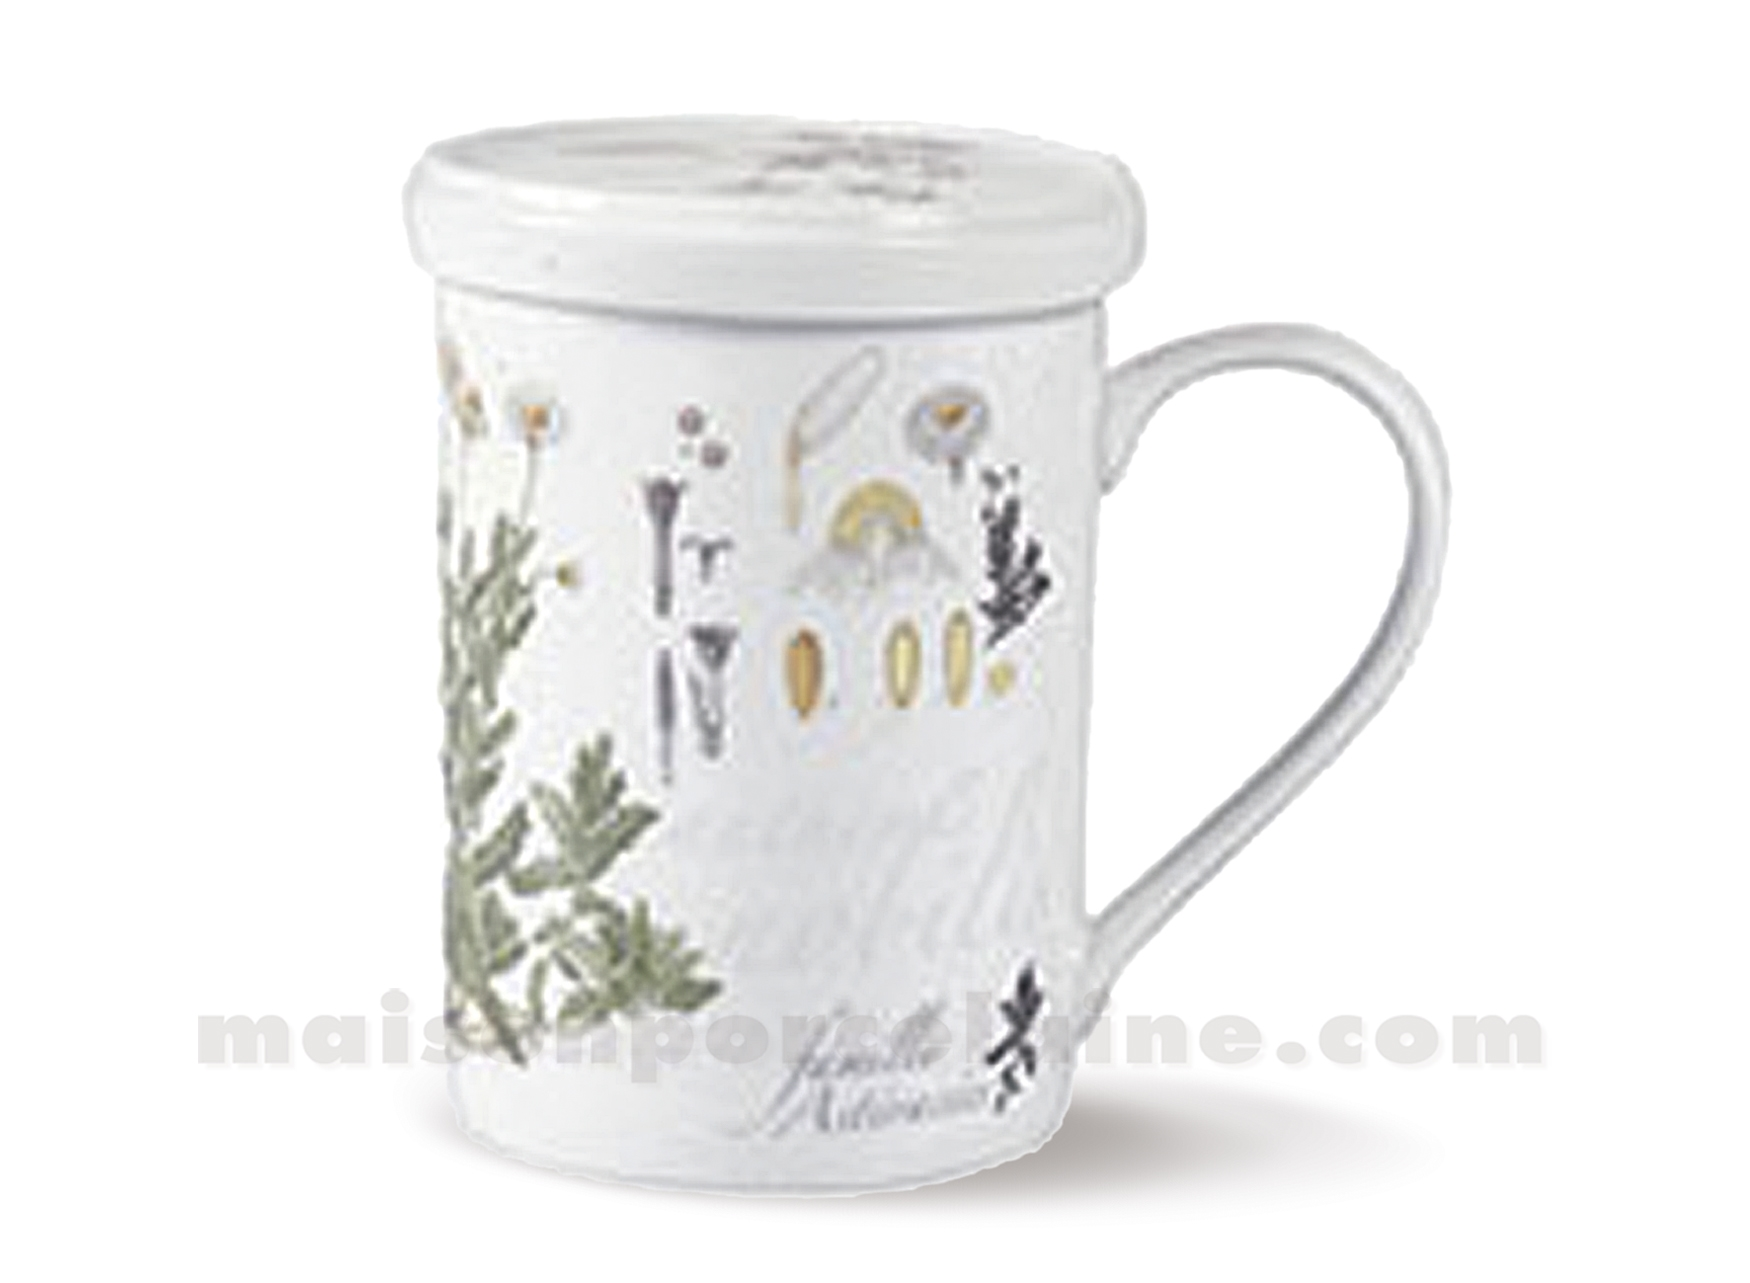 Tisaniere porcelaine filtre inox camomille maison de la for Maison de la porcelaine